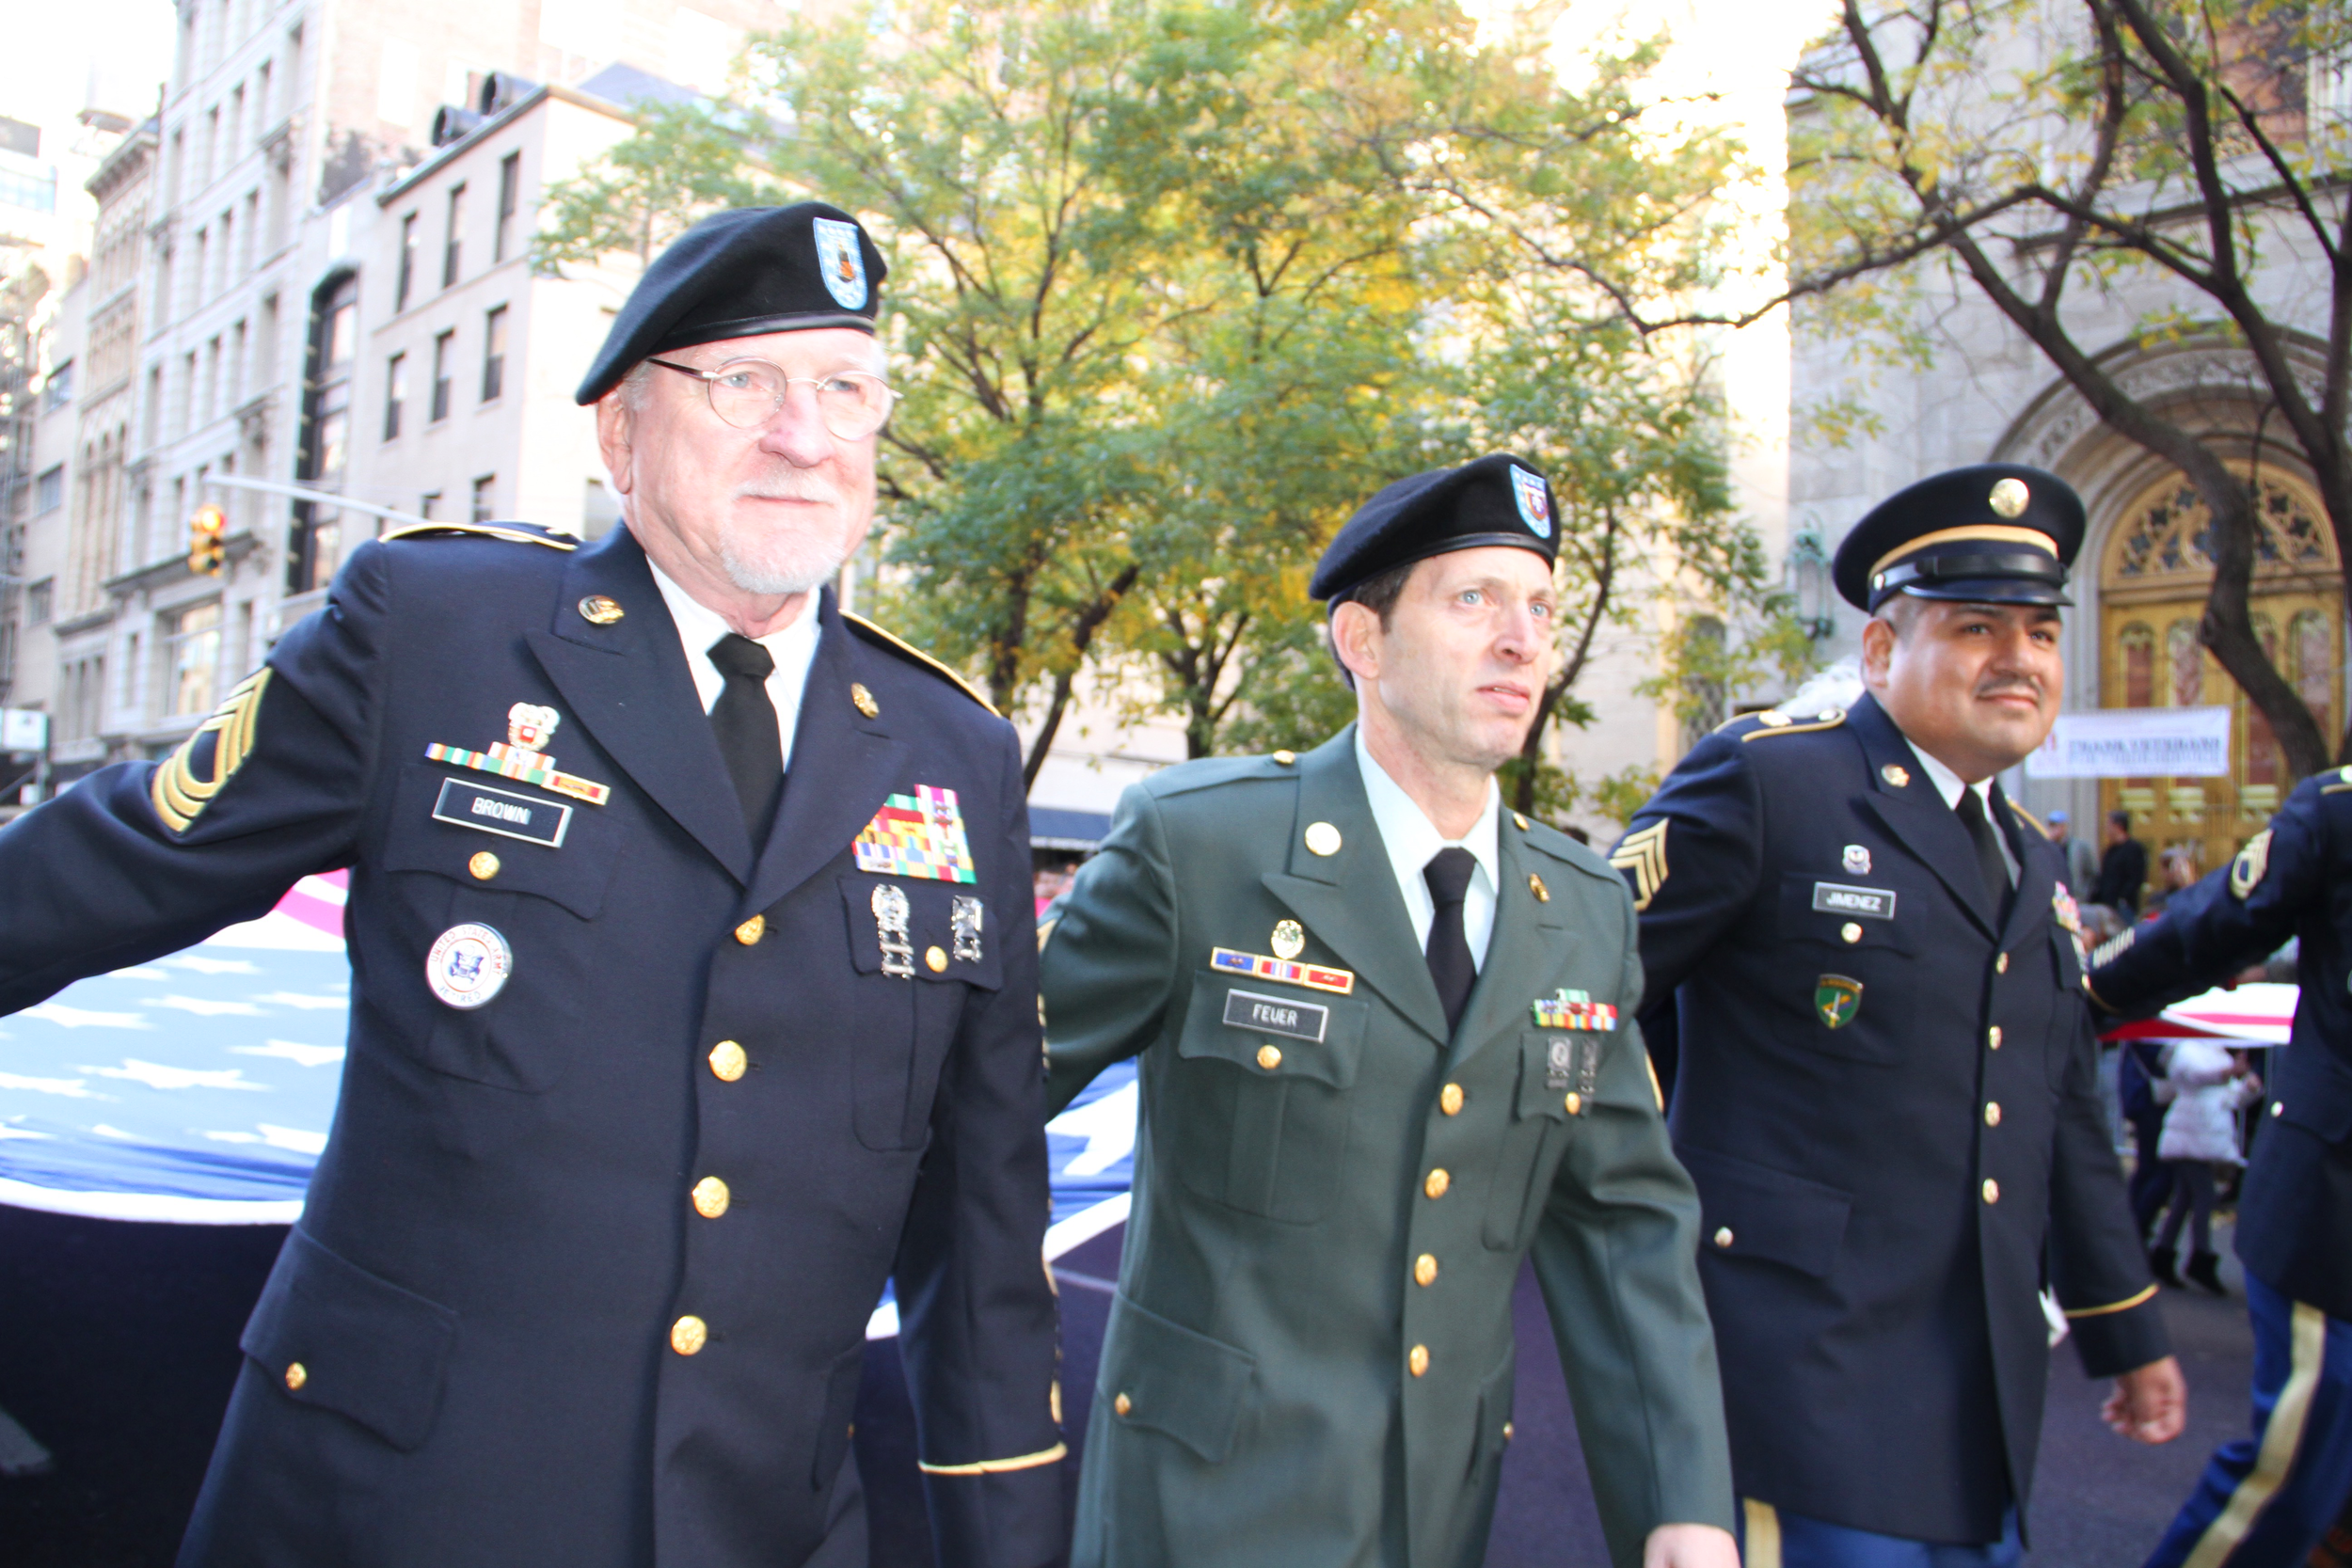 2016 Veterans Day Parade -5th Avenue, New York. Photo by: Cierra Mazzola from   GZVF.org